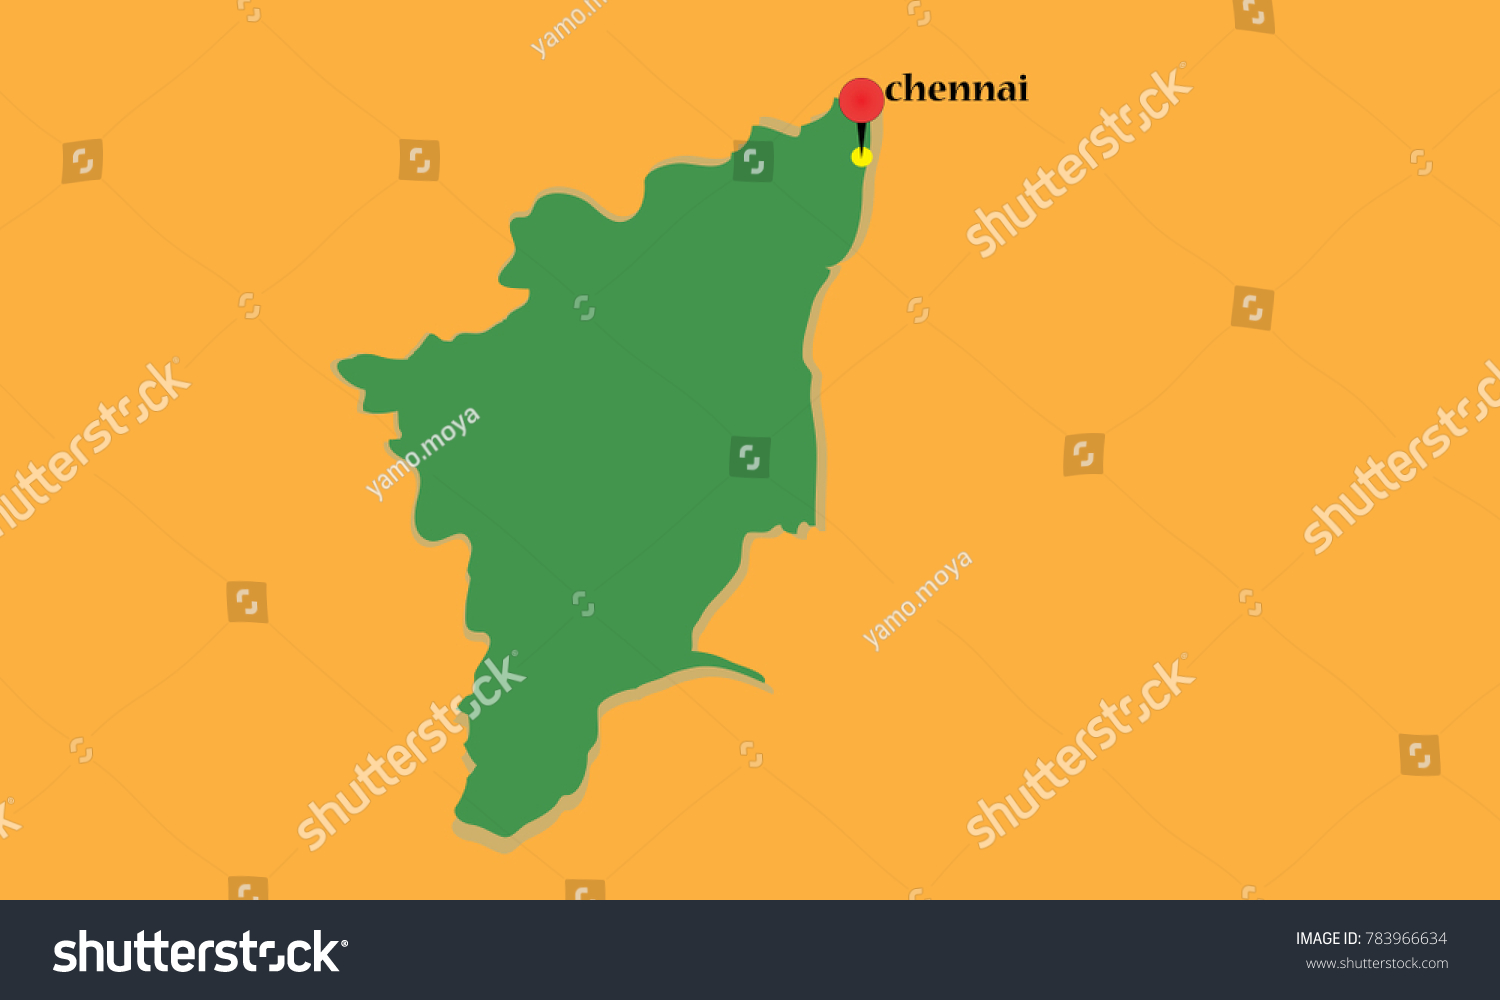 Chennai pinned on map tamil nadu stock vector 783966634 shutterstock chennai pinned on a map of tamil nadu gumiabroncs Image collections